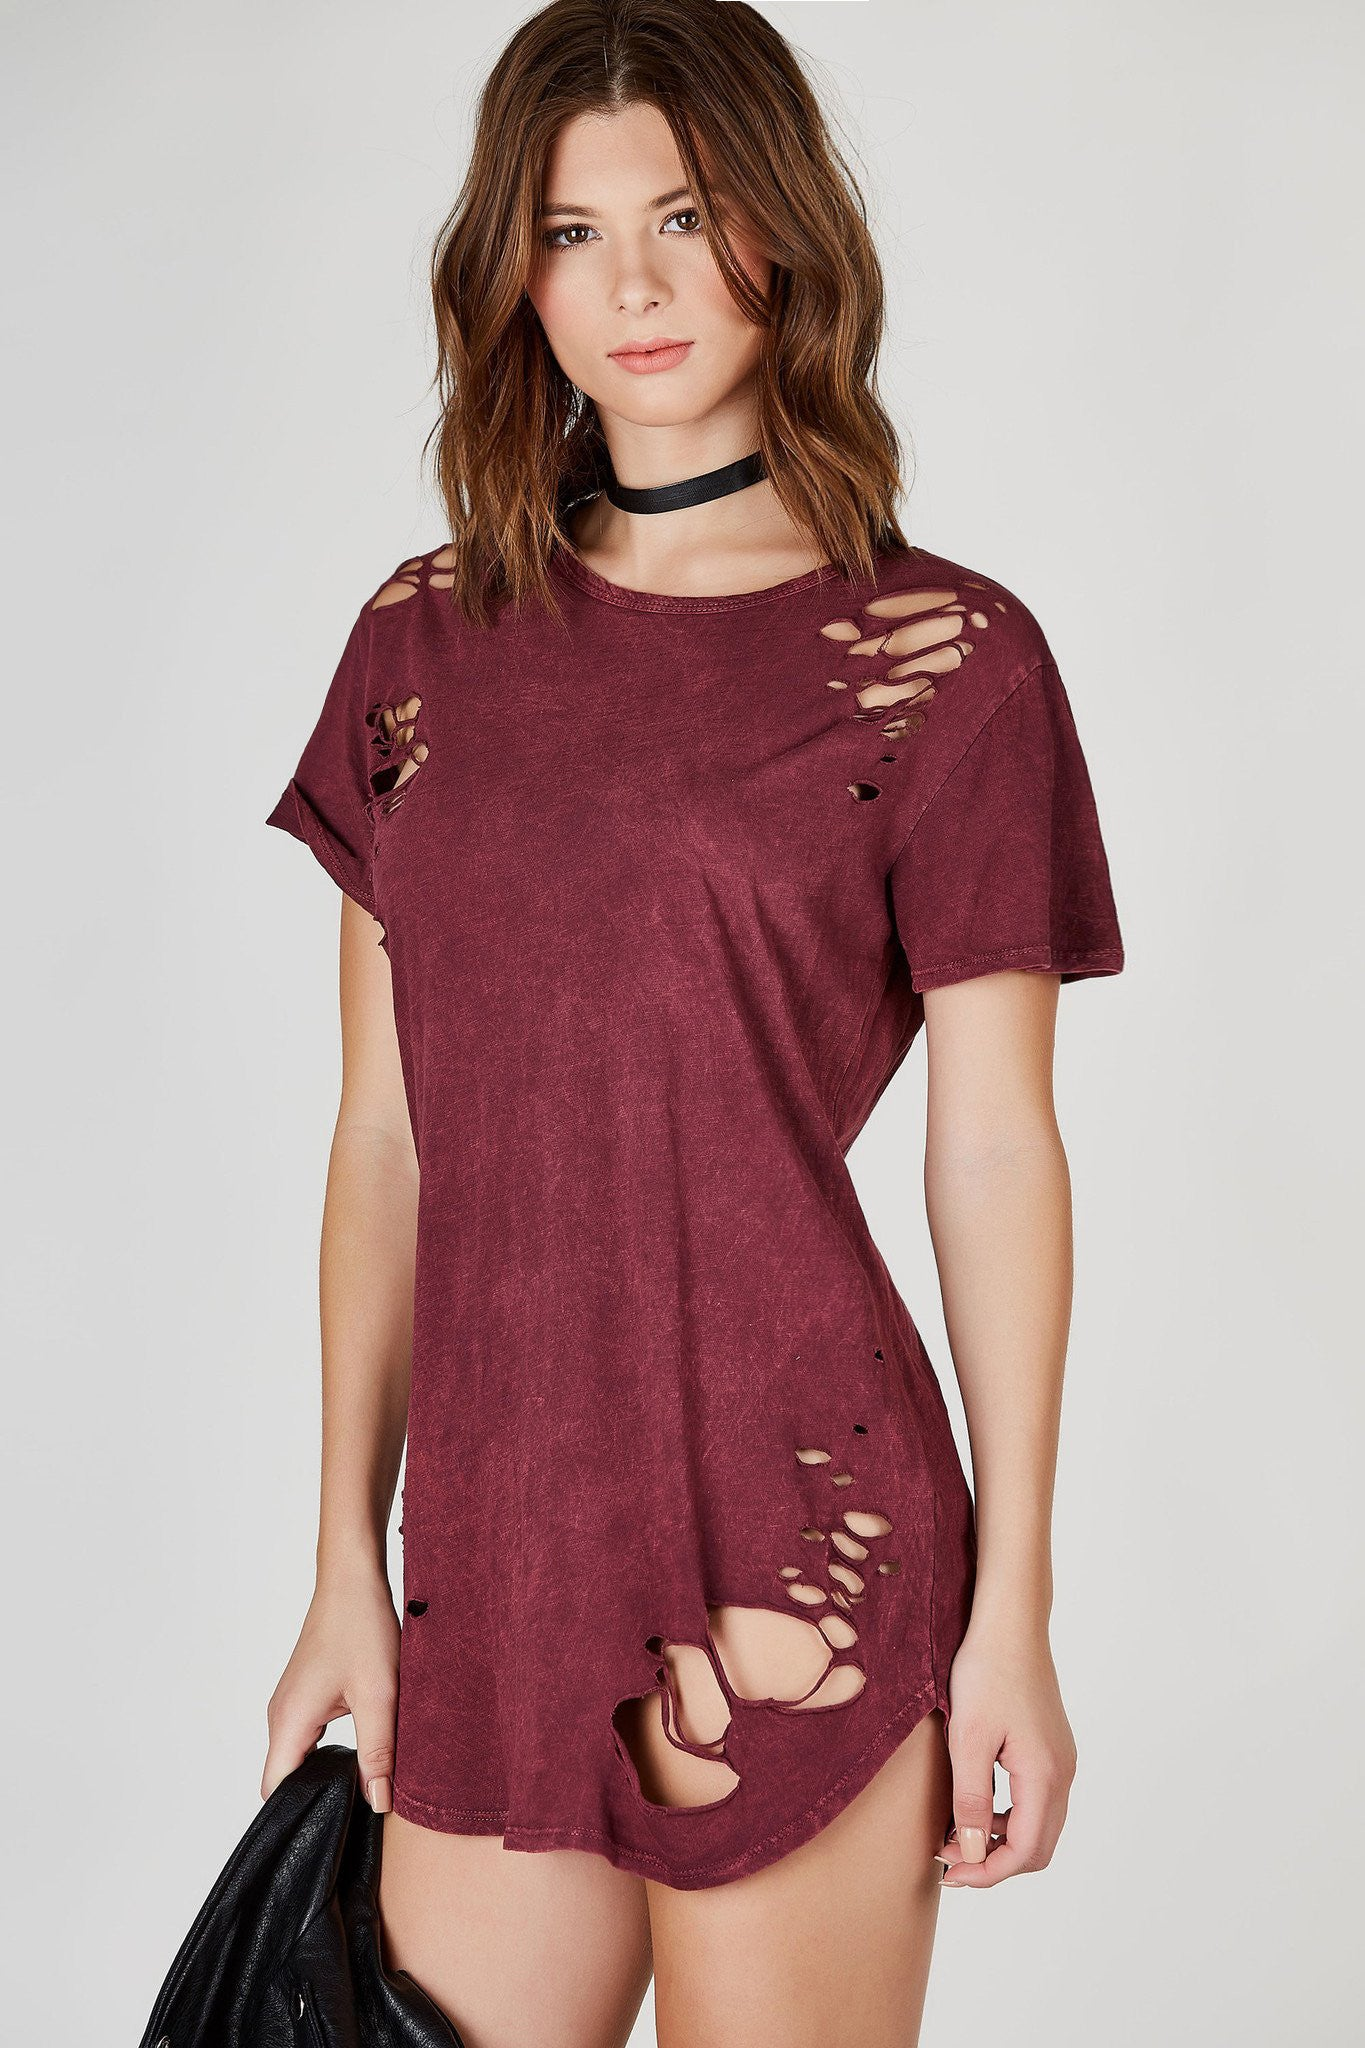 An incredible longline tee wth trendy distressing throughout. Mineral wash with rounded hi-low hem. Perfect to wear as a T-shirt dress on a lazy day. Throw on your favorite sneakers and tie a flannel around your waist for a soft grunge look!